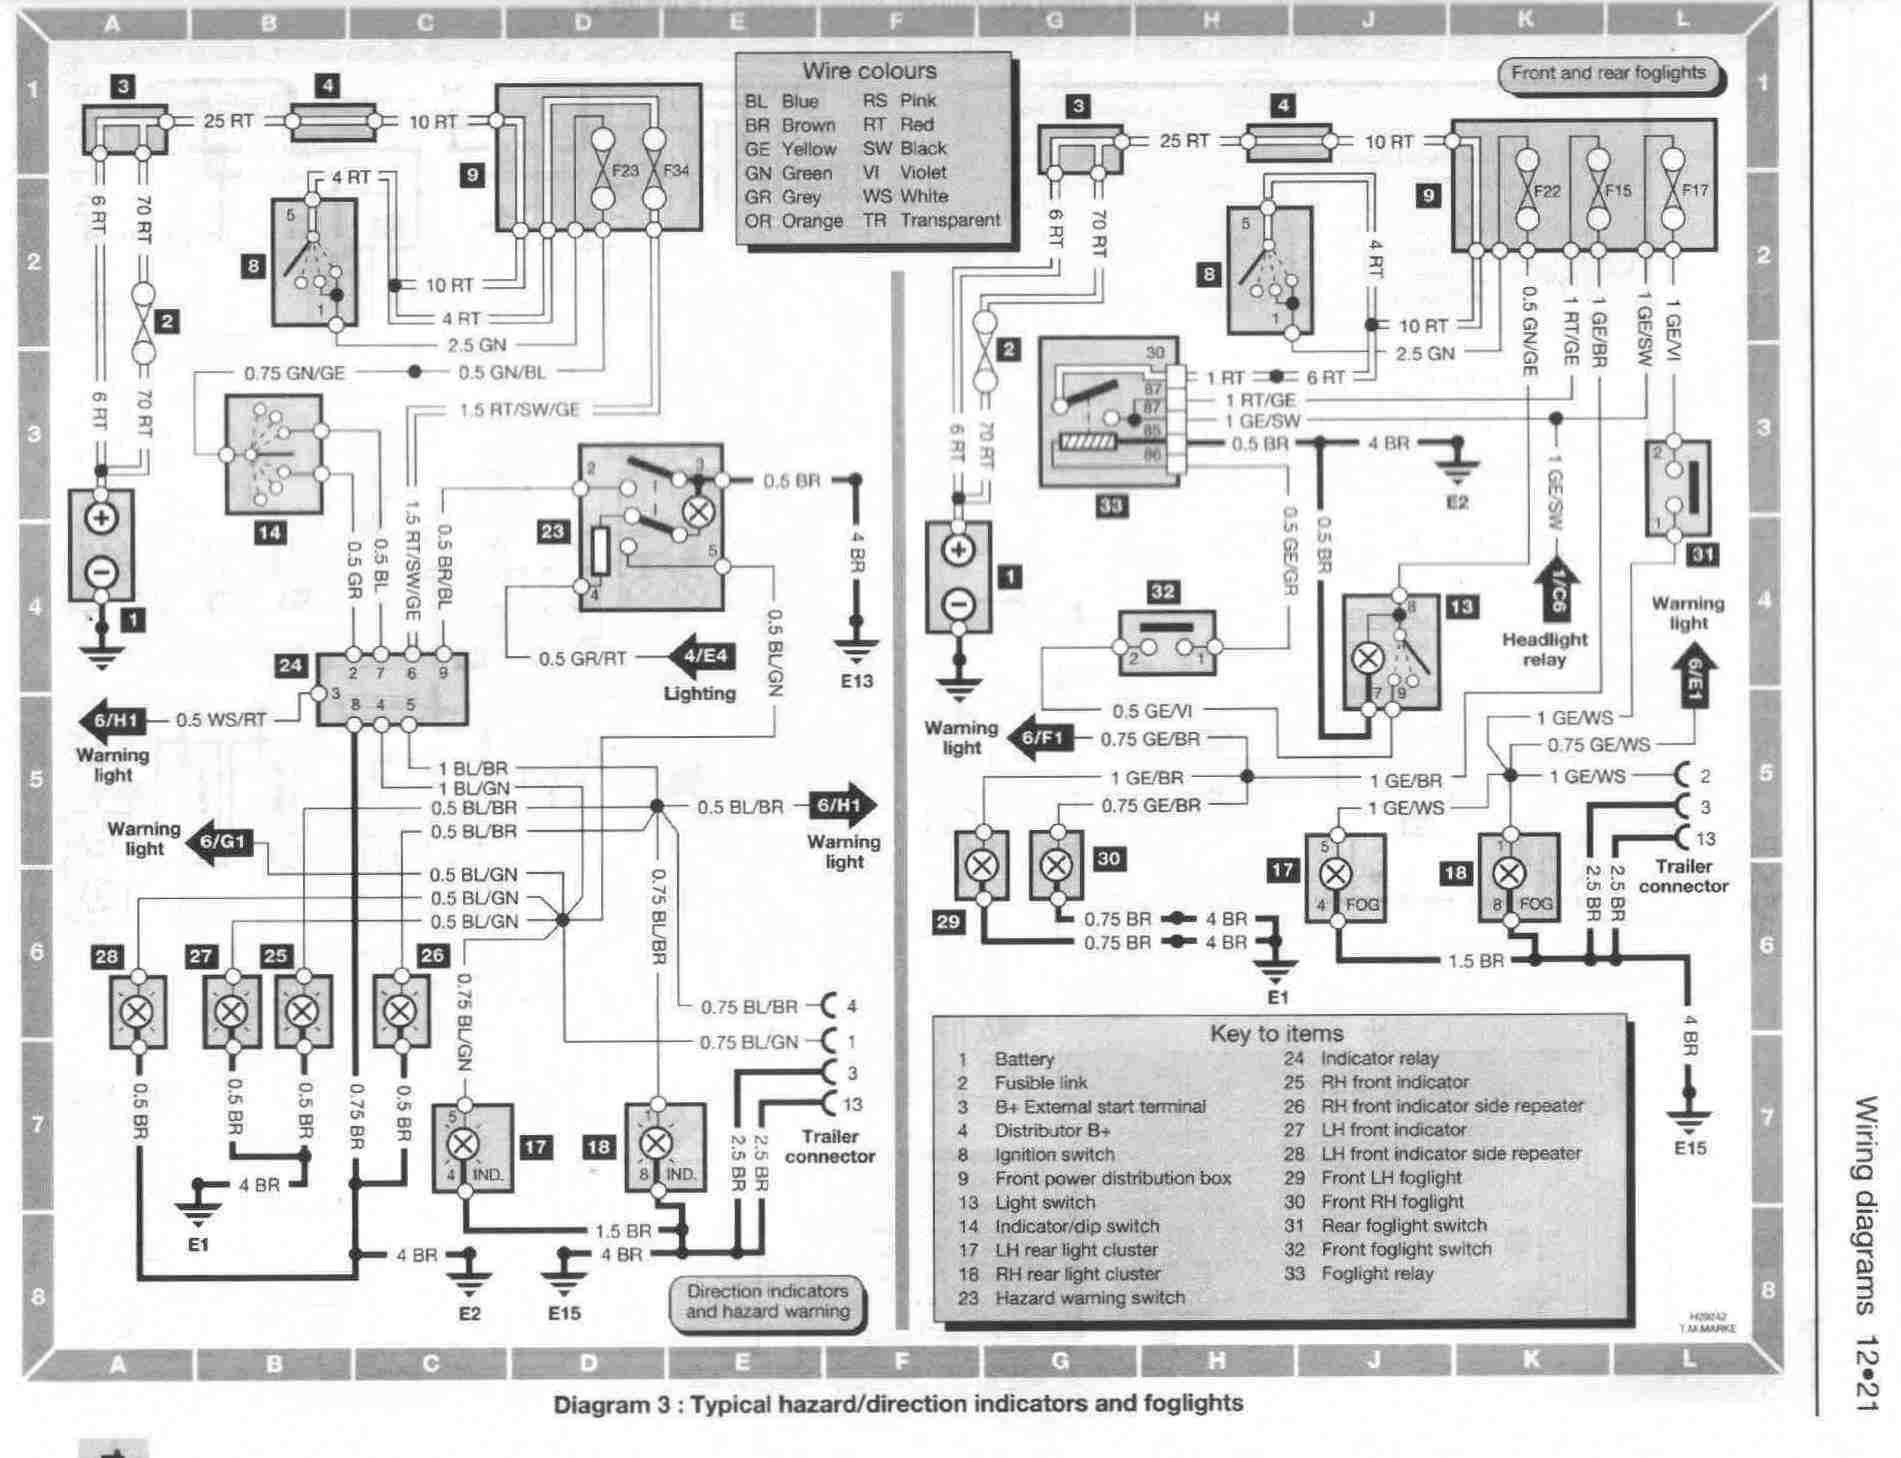 New Bmw E46 318i Wiring Diagram Pdf  Diagram  Diagramtemplate  Diagramsample